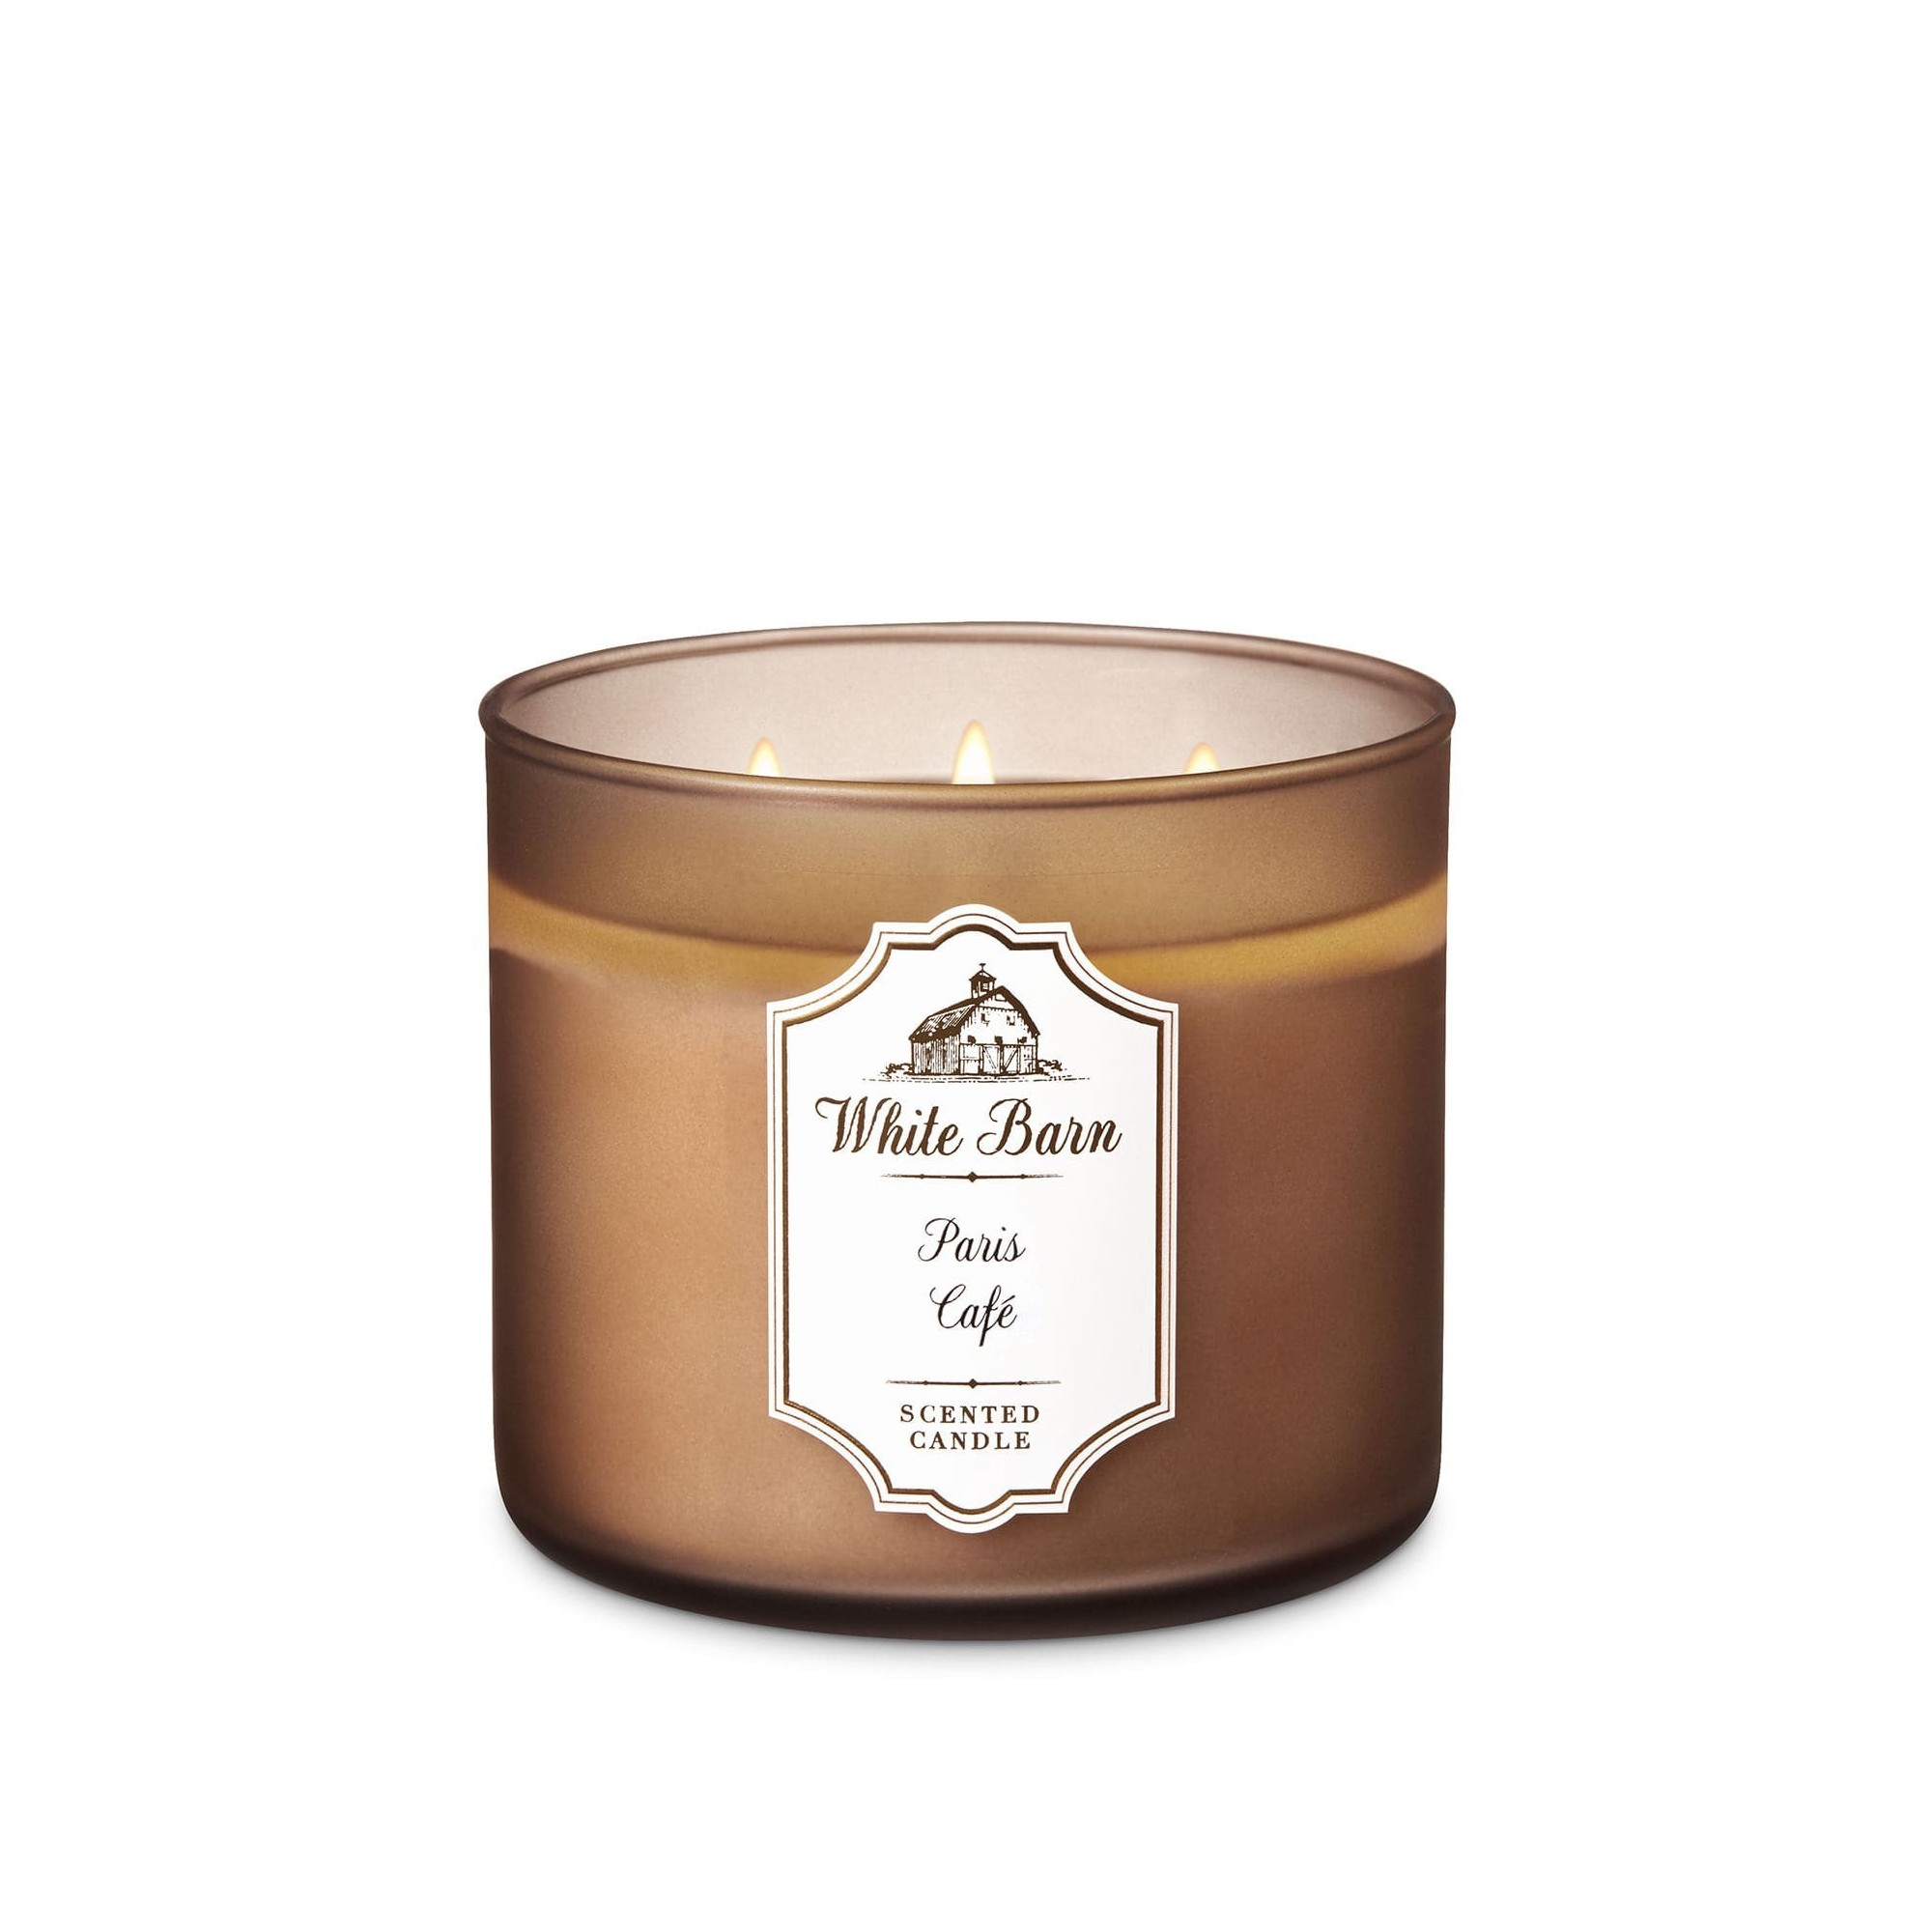 Bath & Body Works White Barn Paris Café 3 Wick Scented Candle